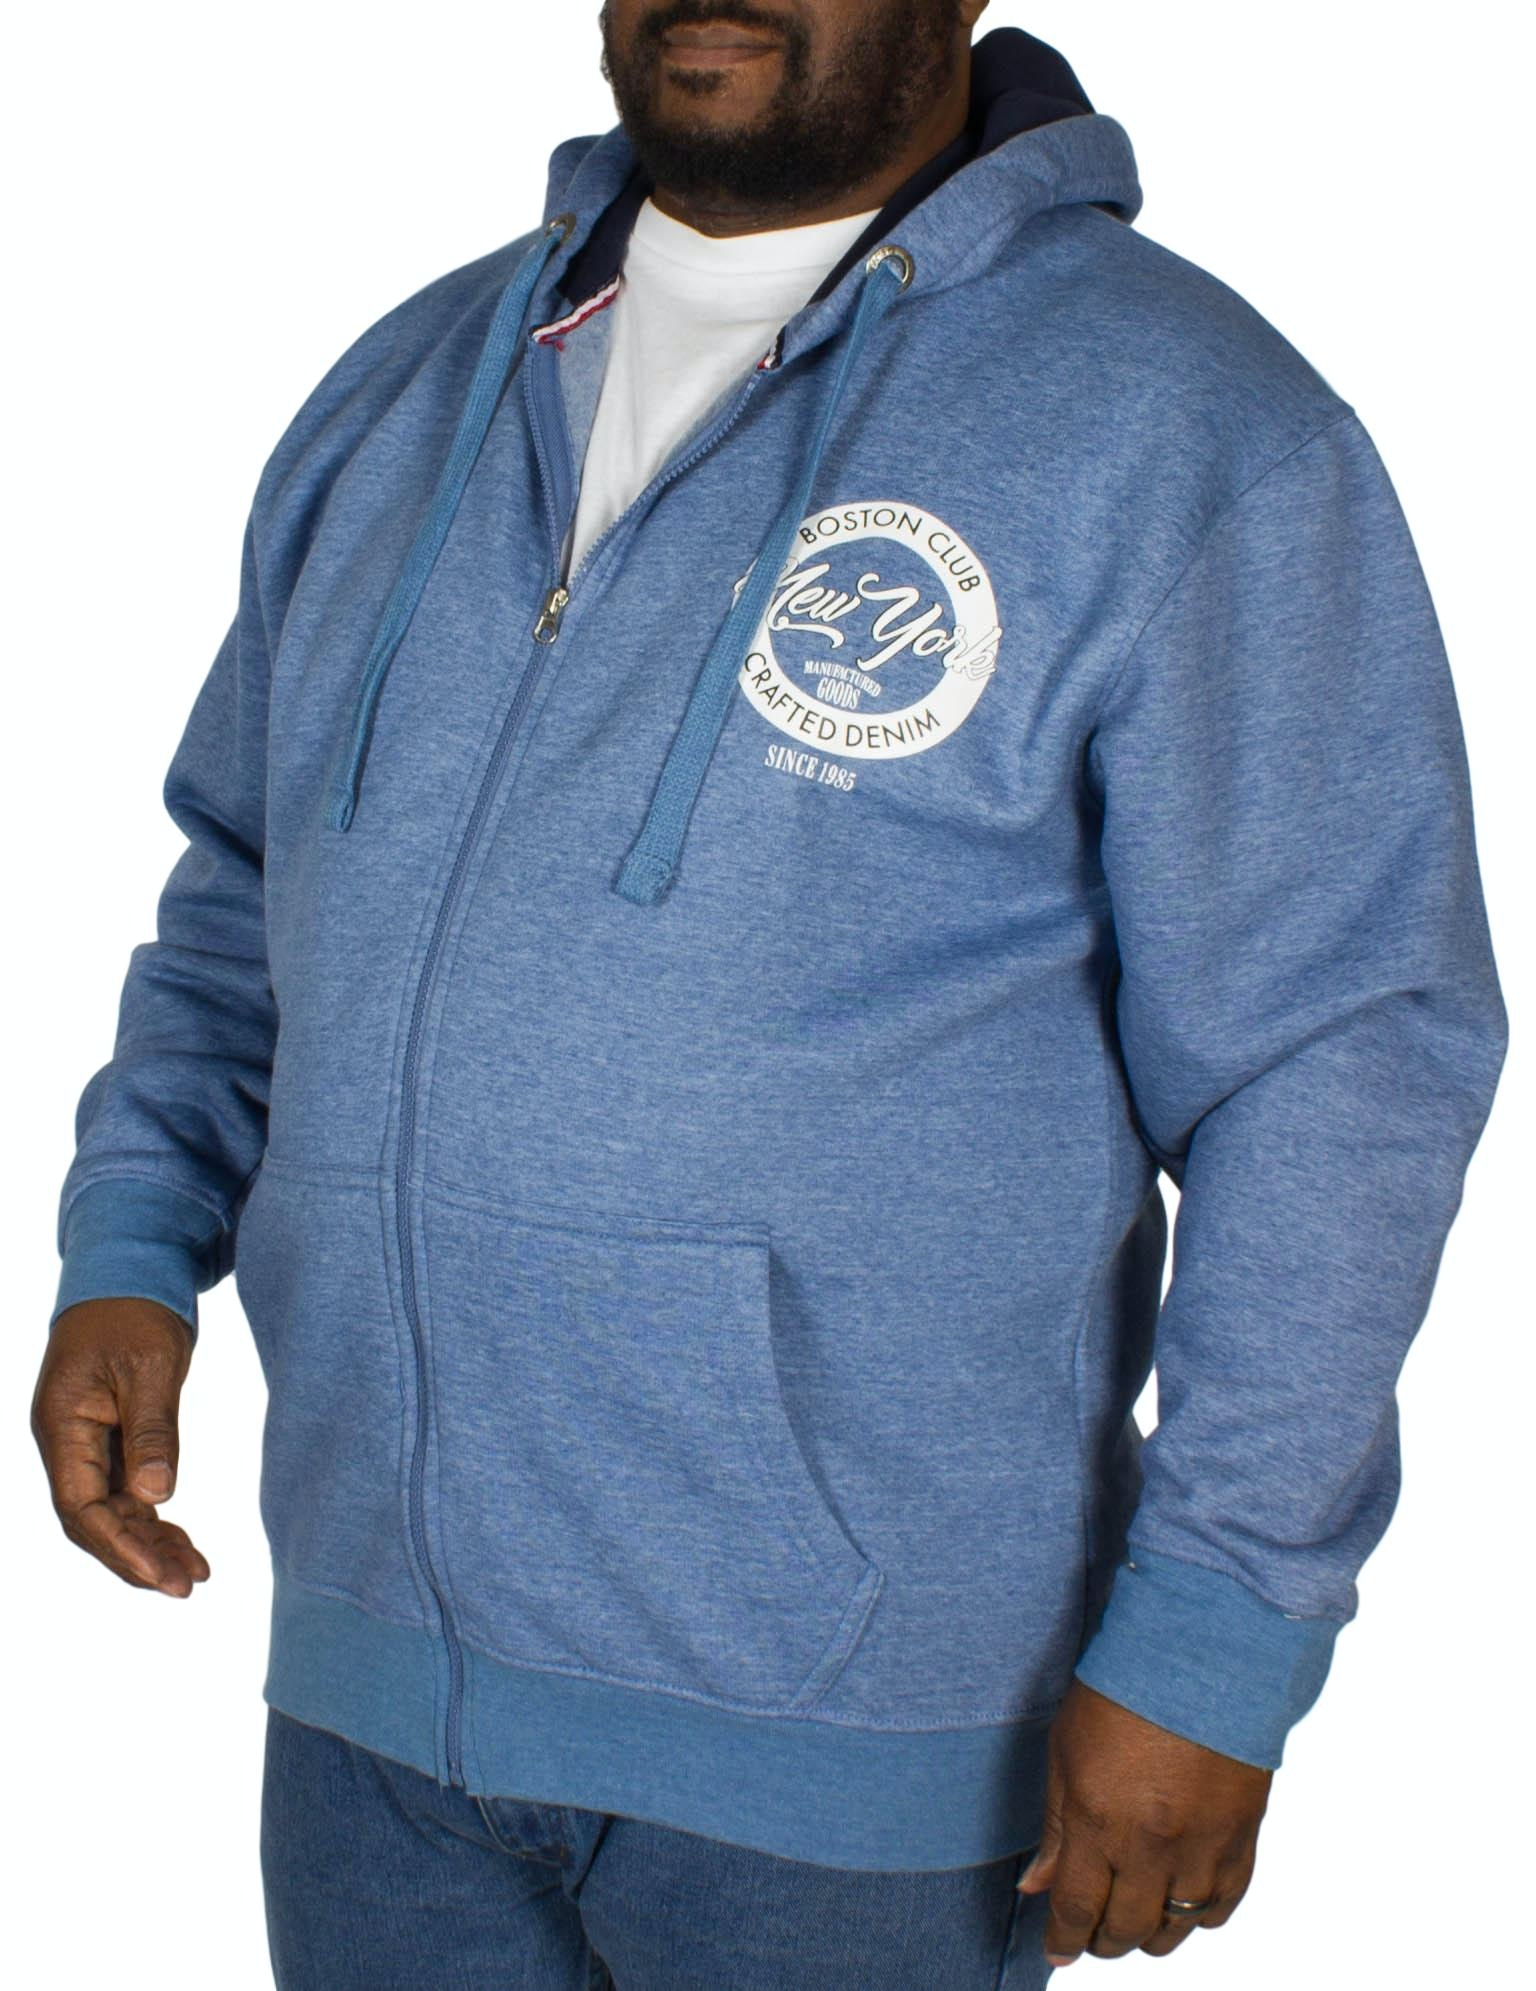 KAM Boston Club Hoody Denim